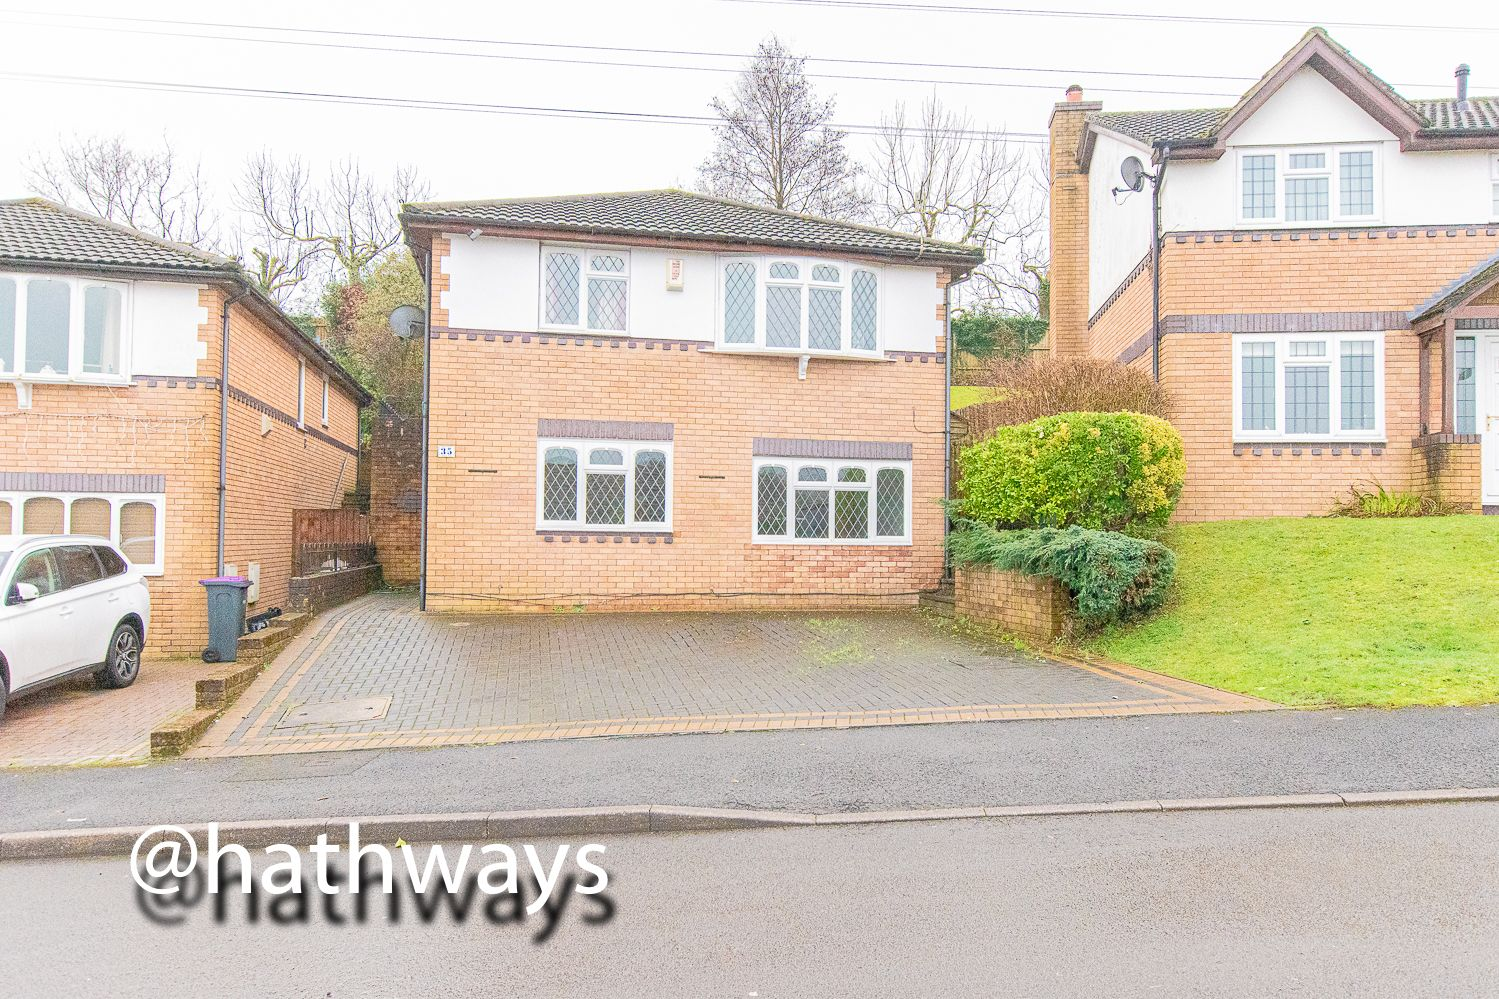 4 bed house for sale in Pant Yr Heol Close  - Property Image 41